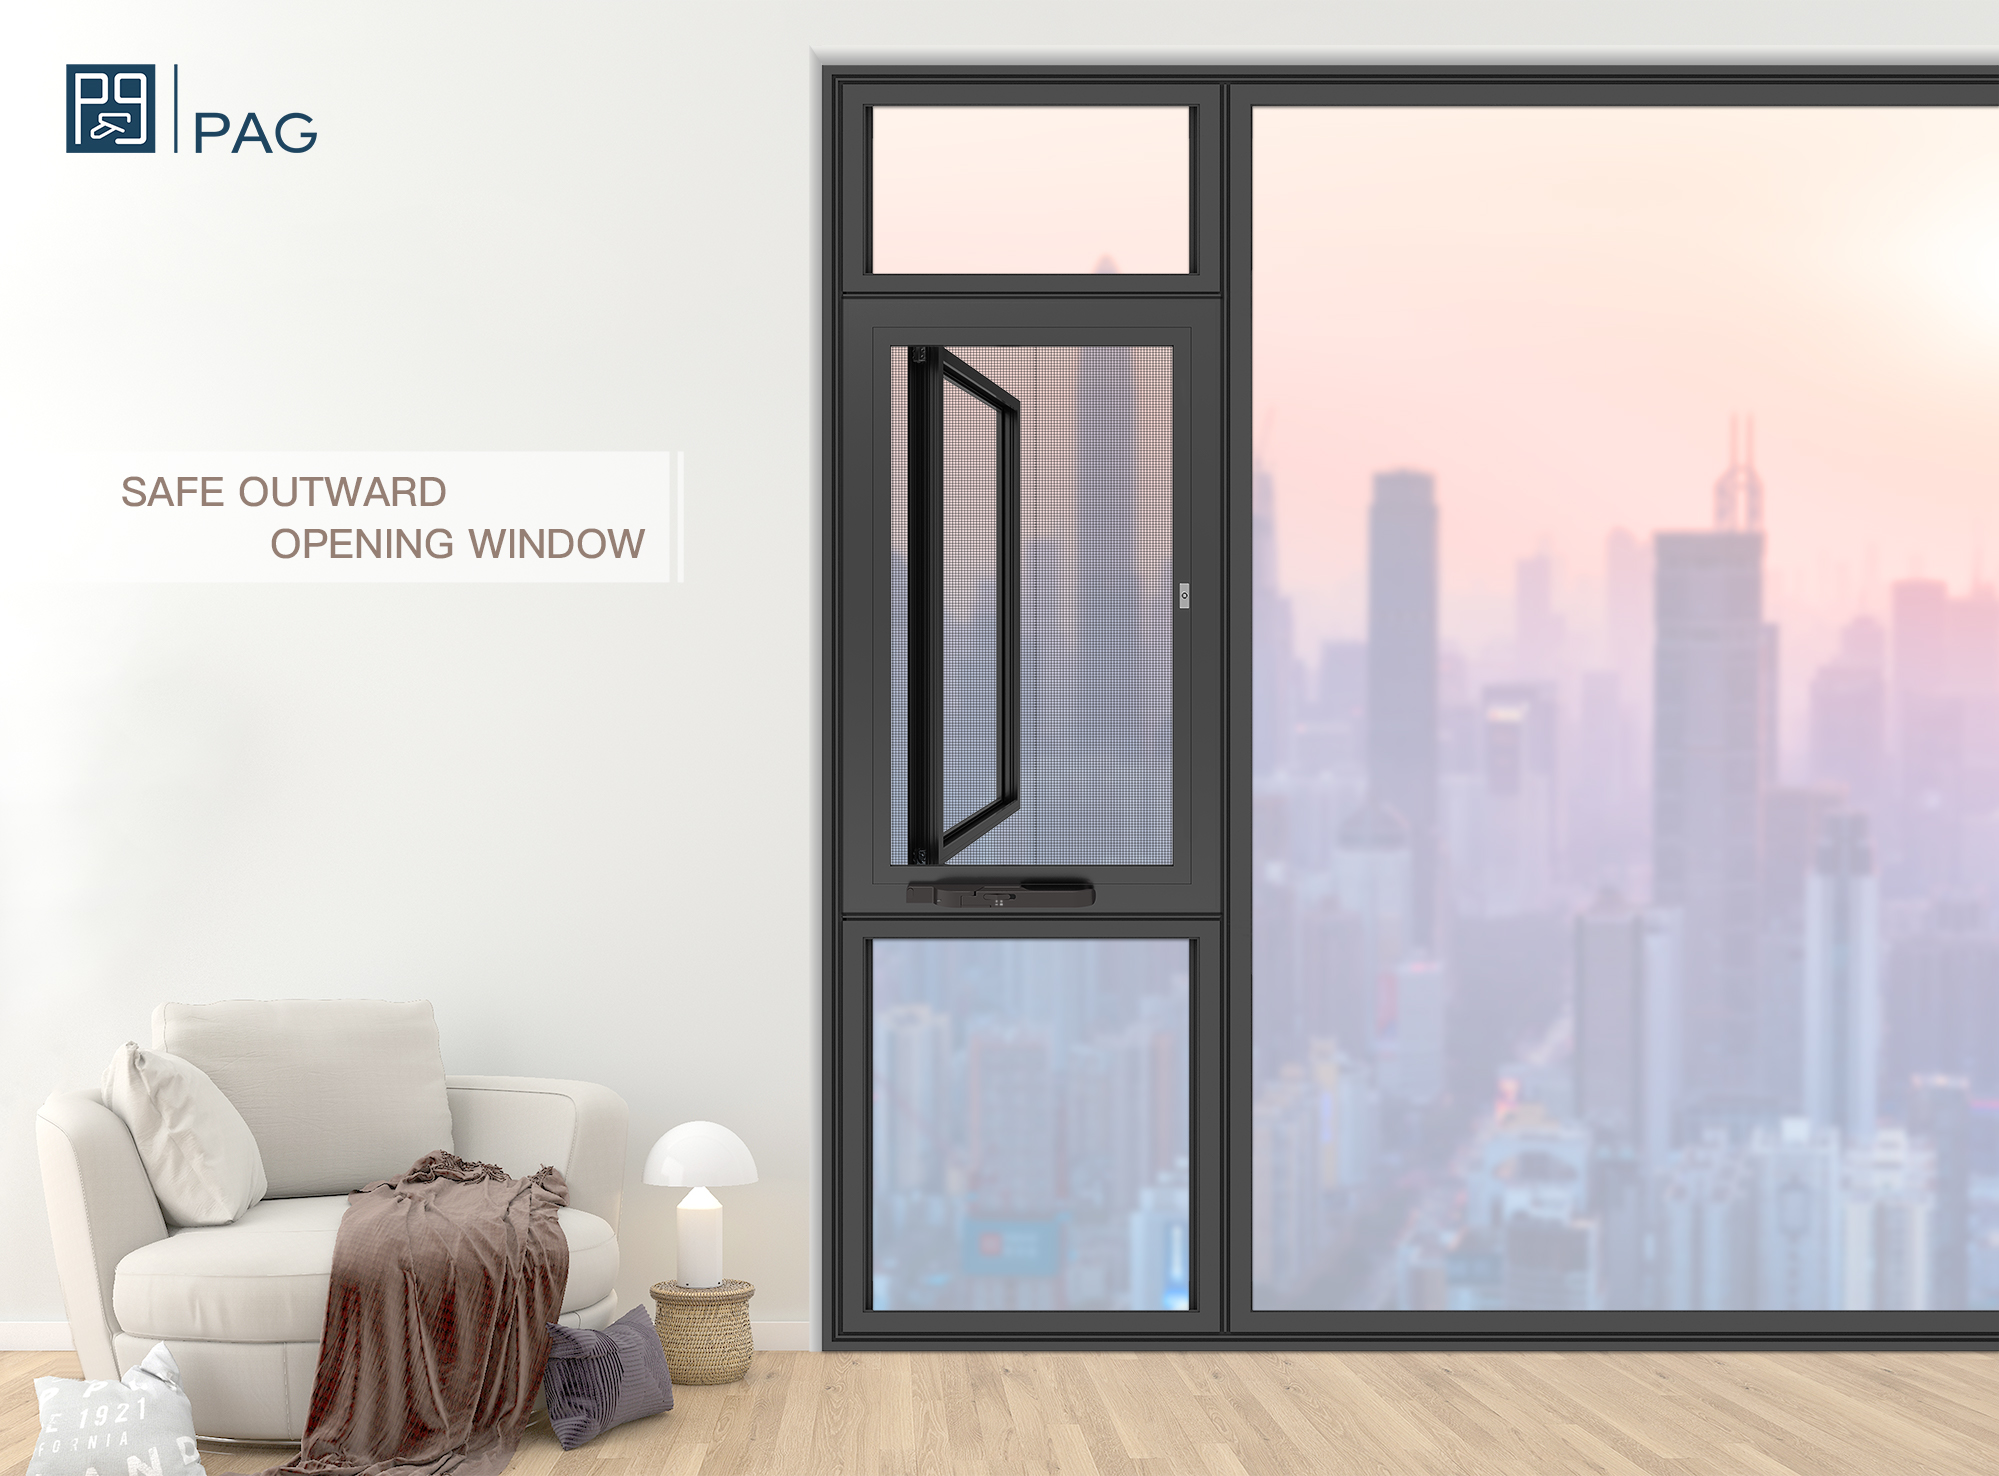 PAG | Safe Outward Opening Window